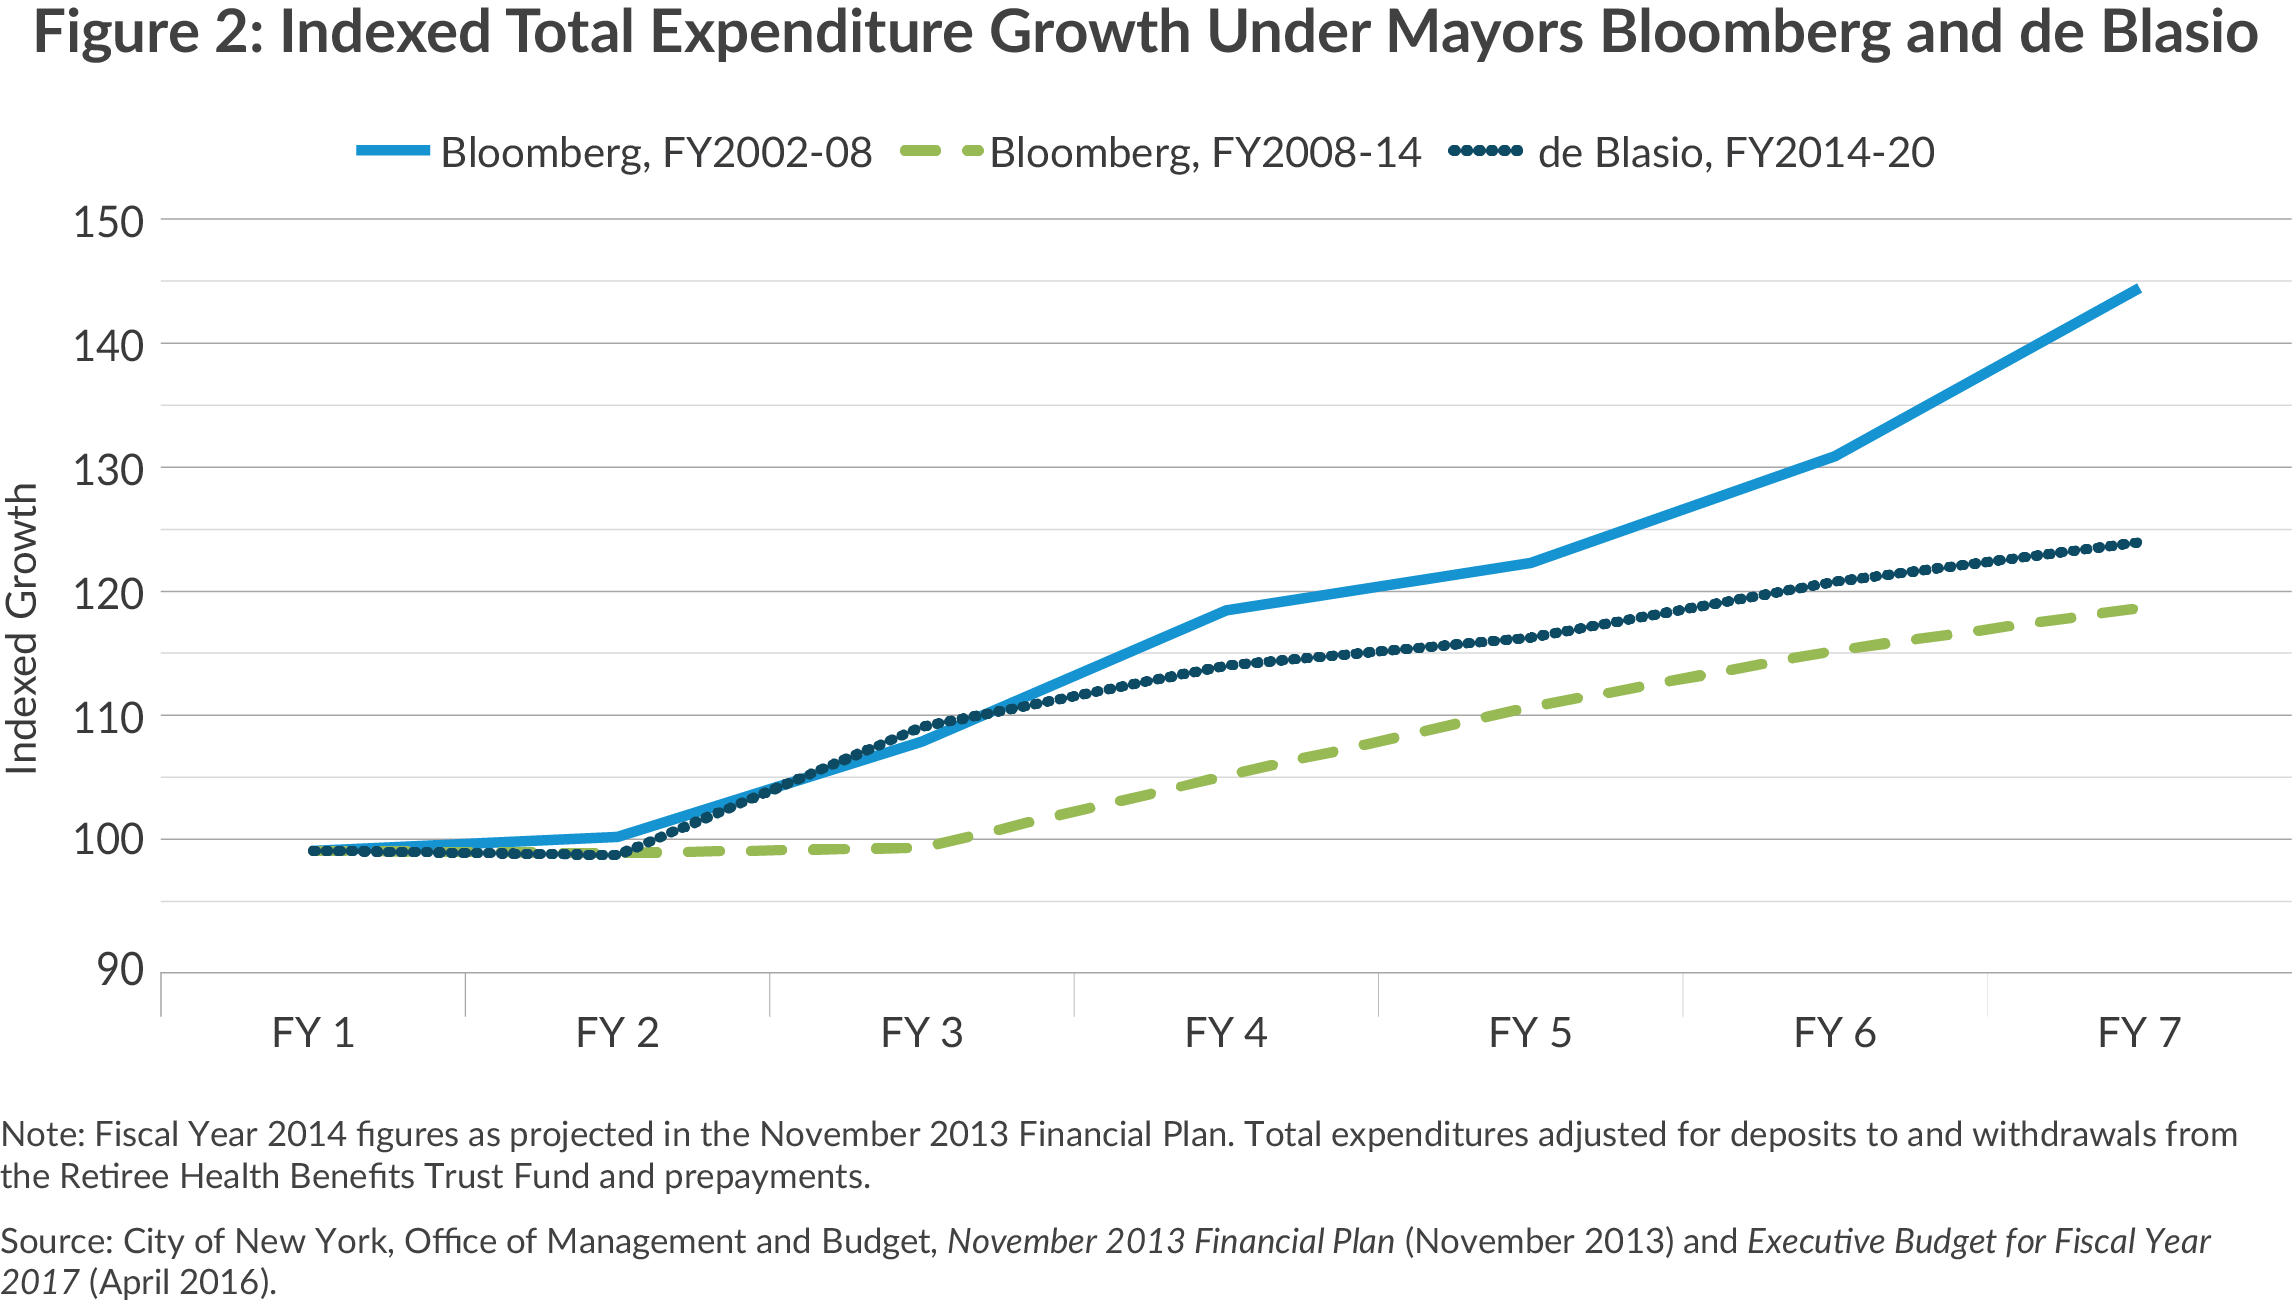 Expenditure Growth, Bloomberg vs. de Blasio